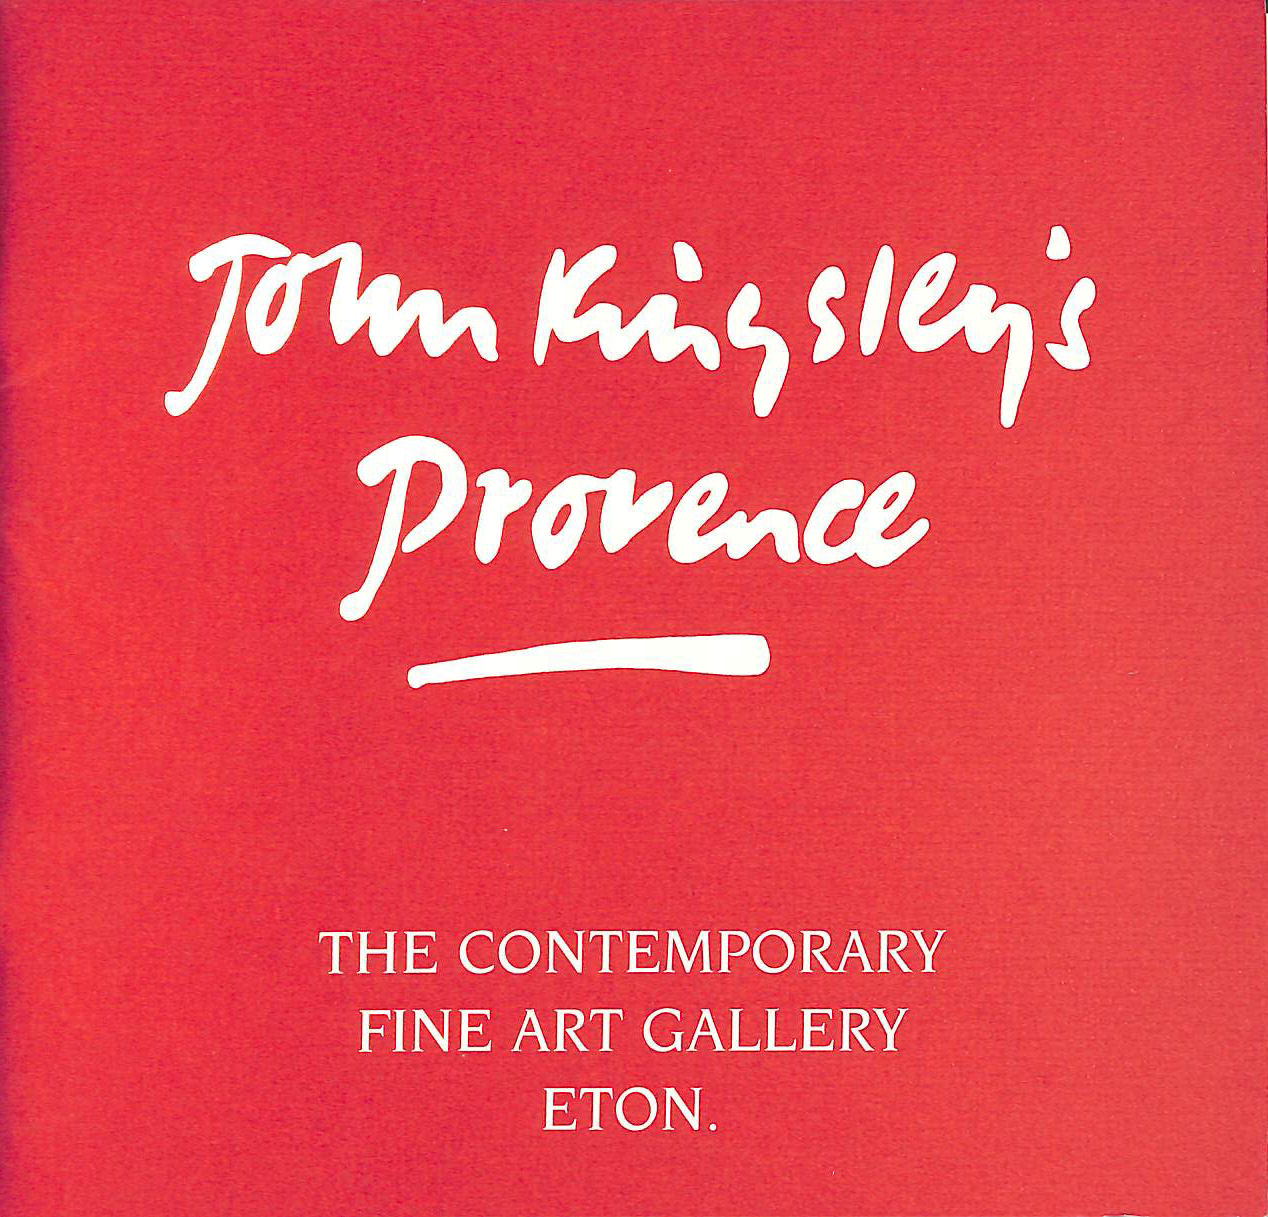 Image for John Kingsley, an Exhibition of Recent Works